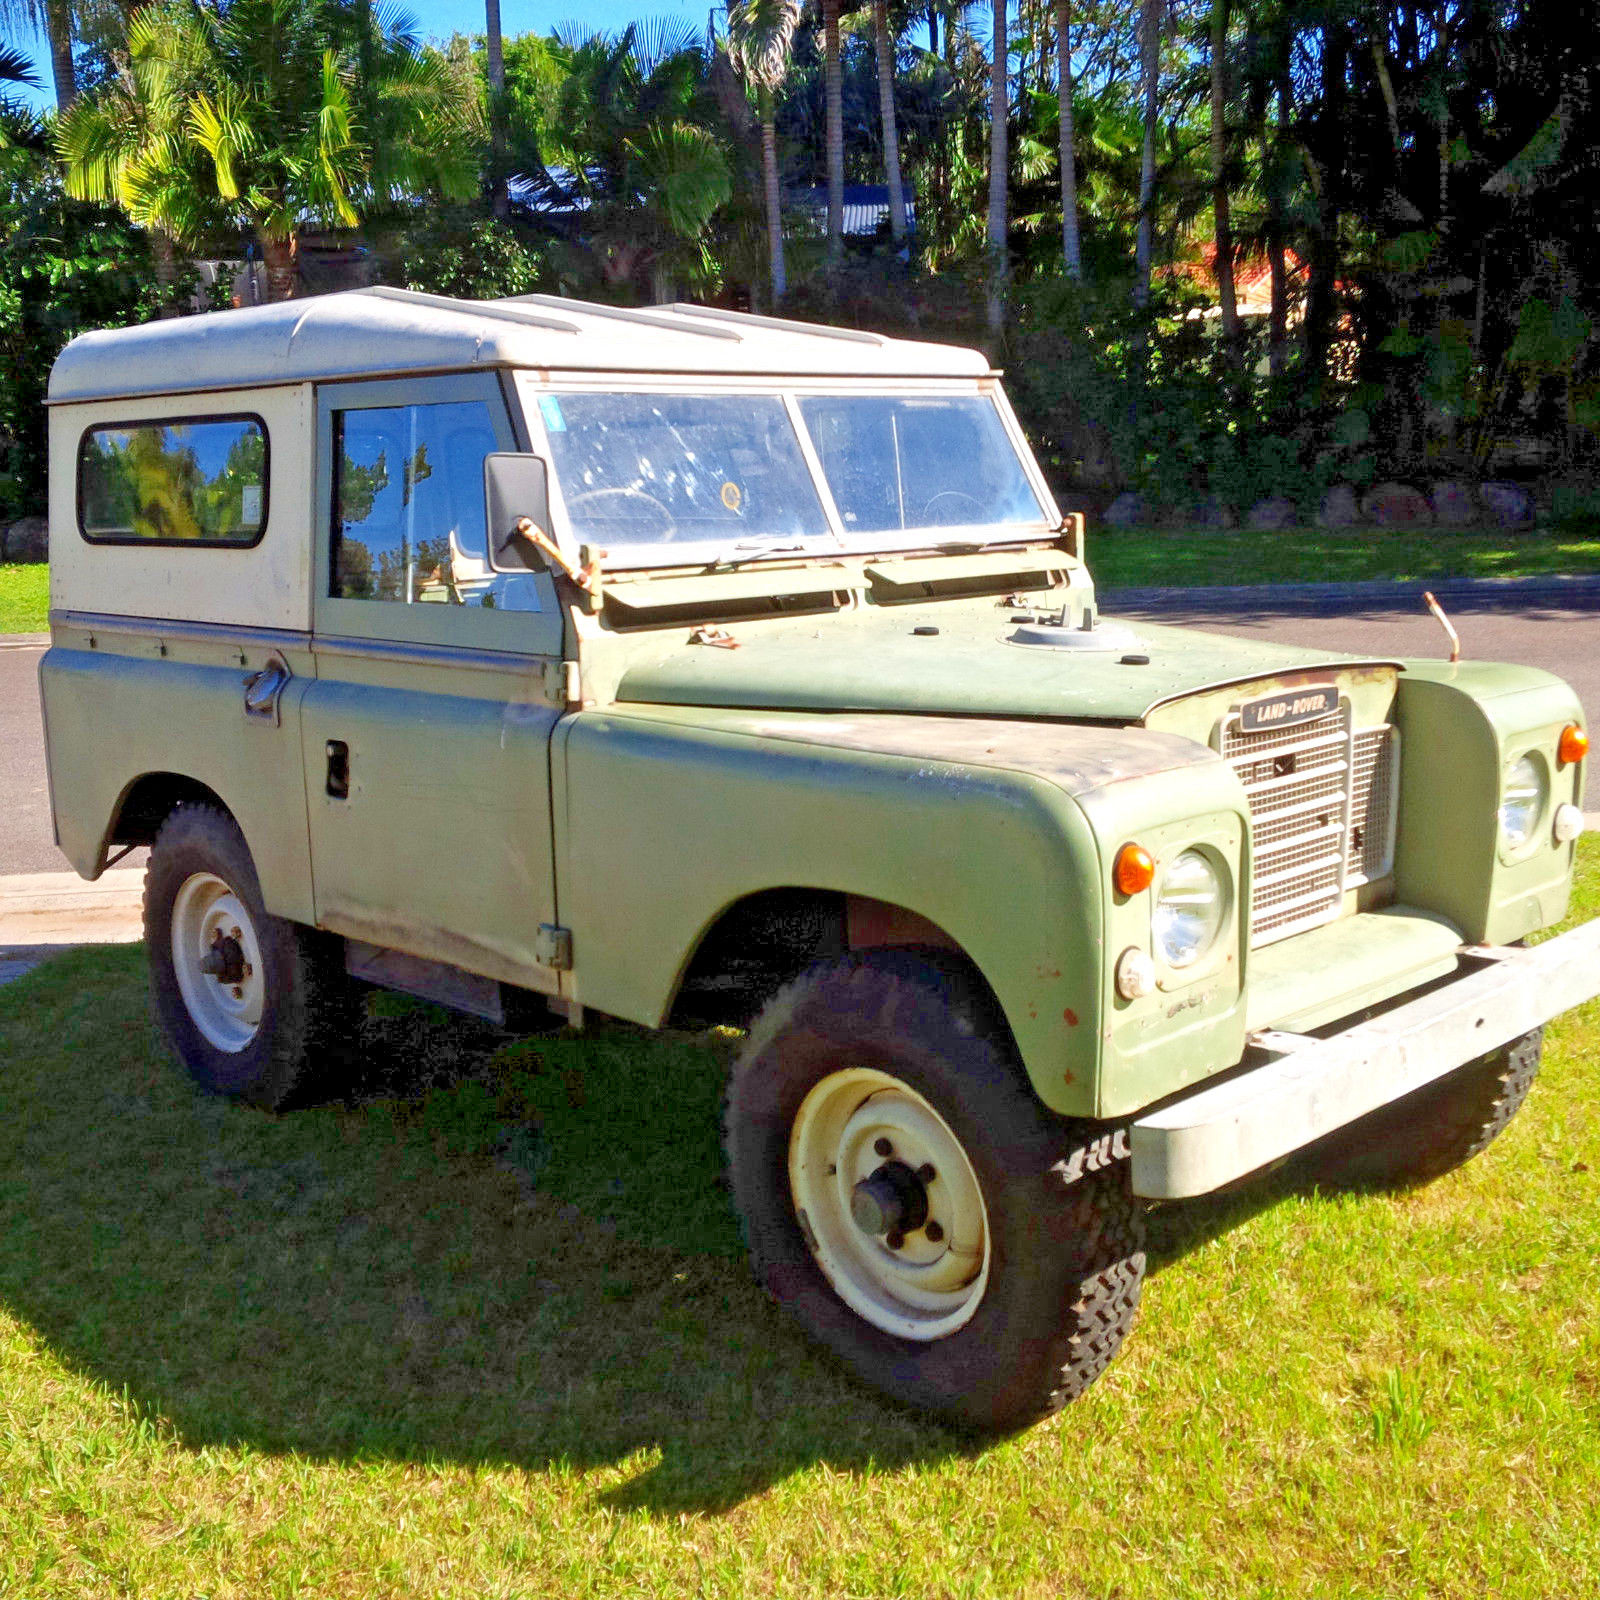 Completely Original 1973 Land Rover Series 3 SWB Offroad